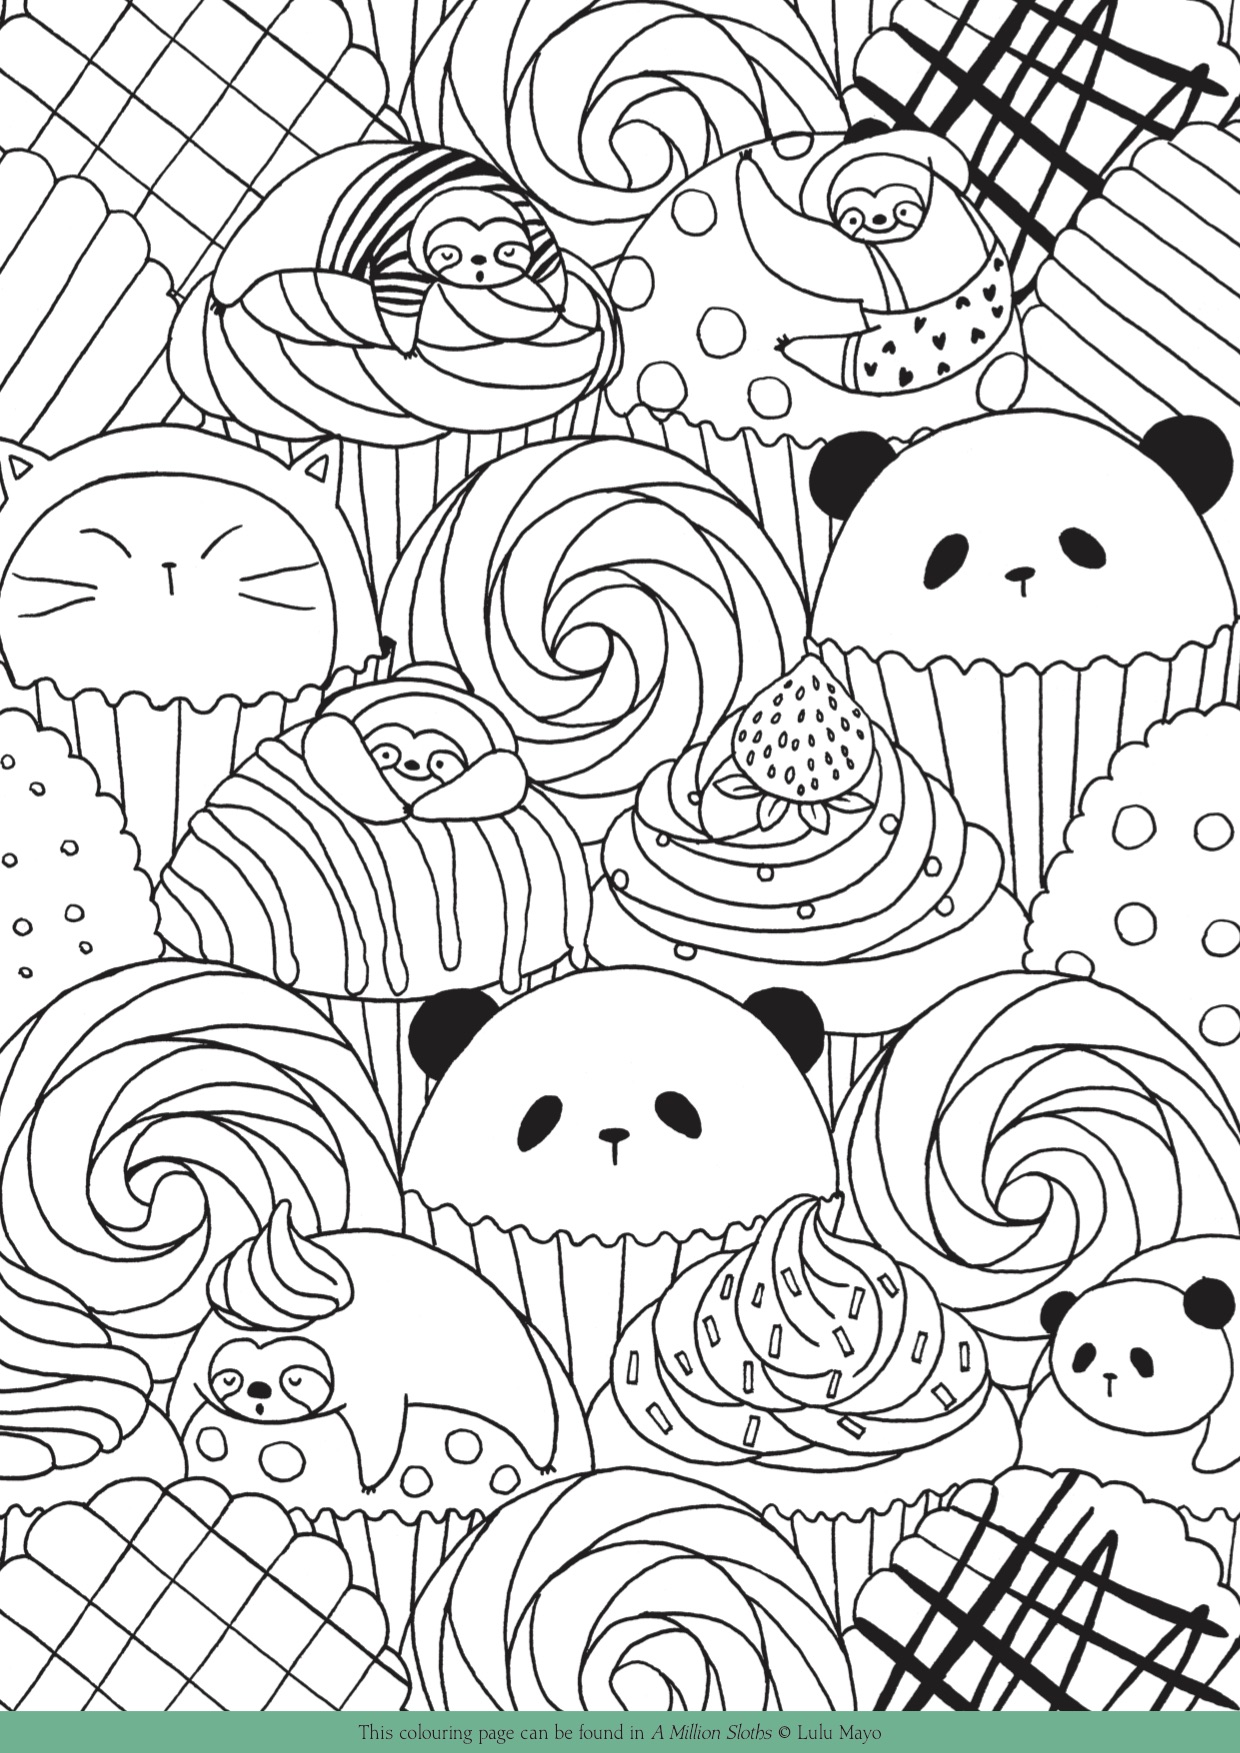 Free Downloadable Colouring Pages For Adults